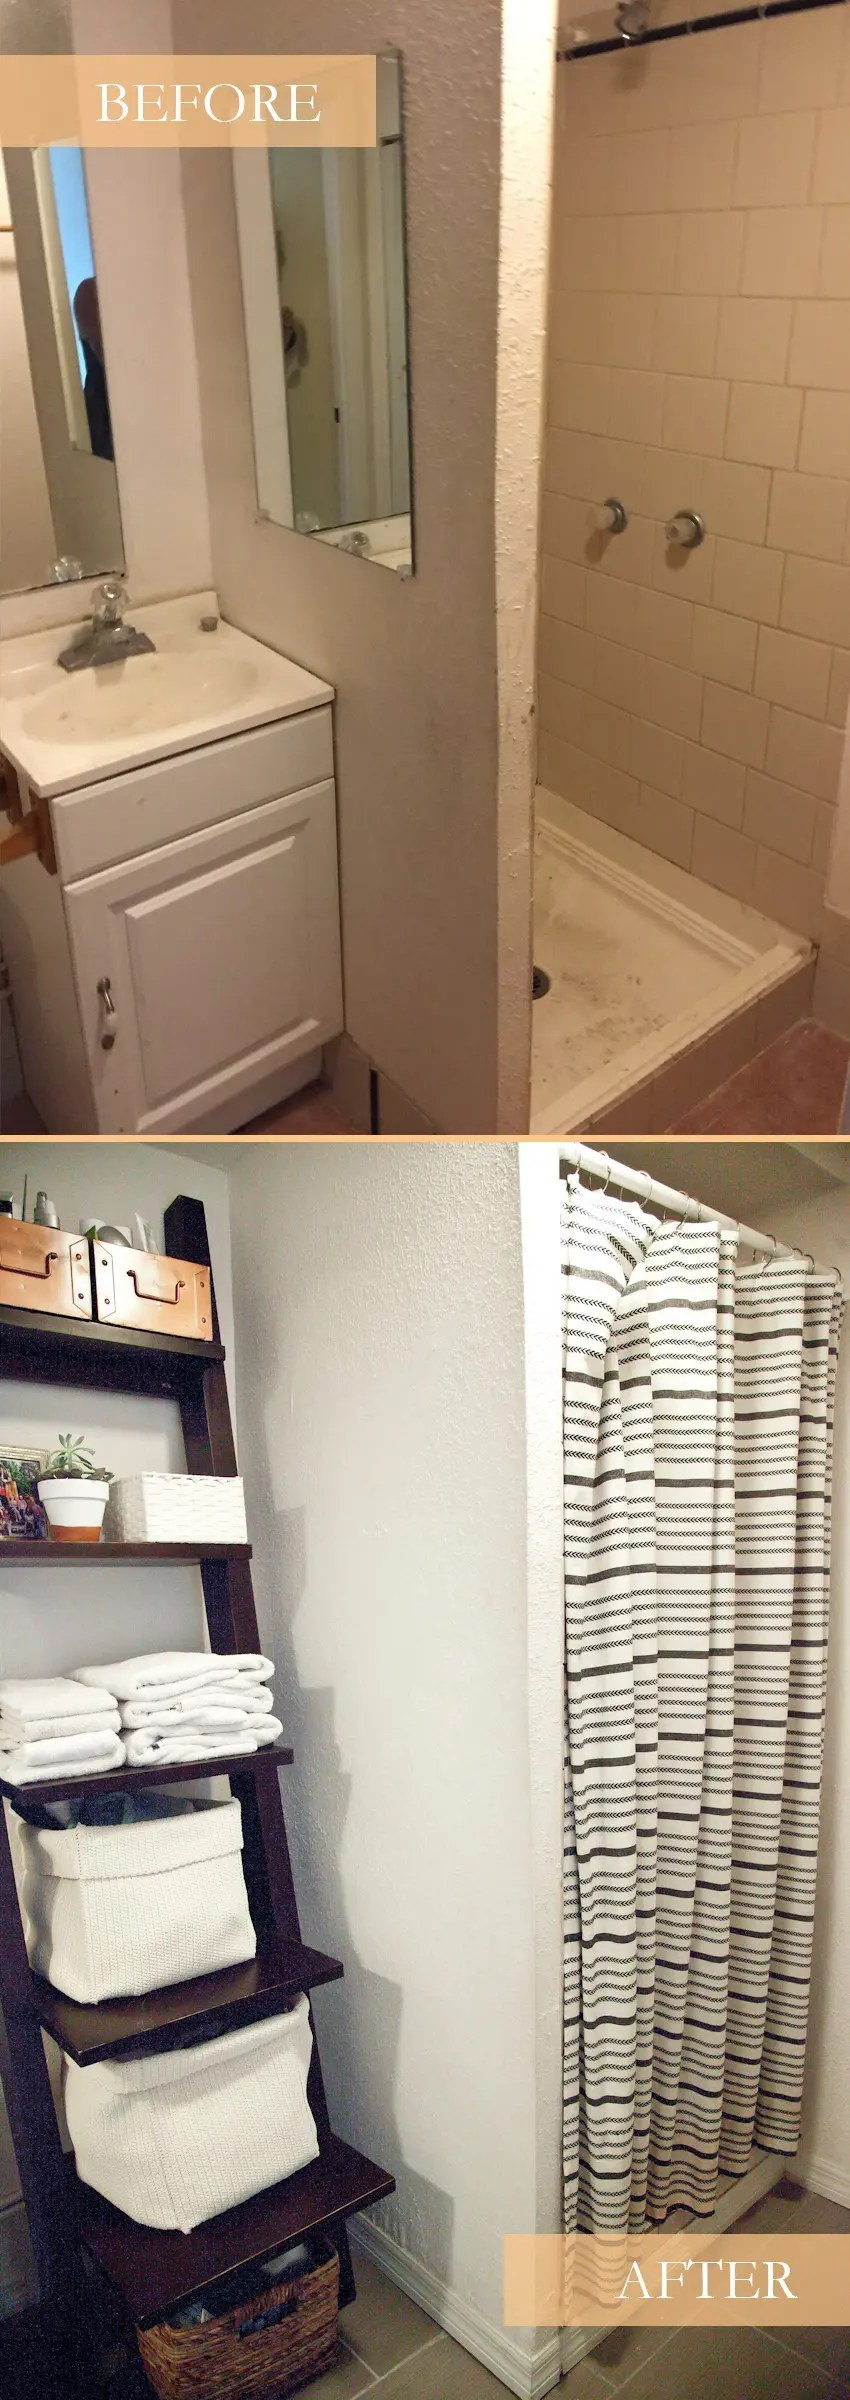 Fresh Taking it Our light and bright simple studio bathroom remodel A Before and After Taking it